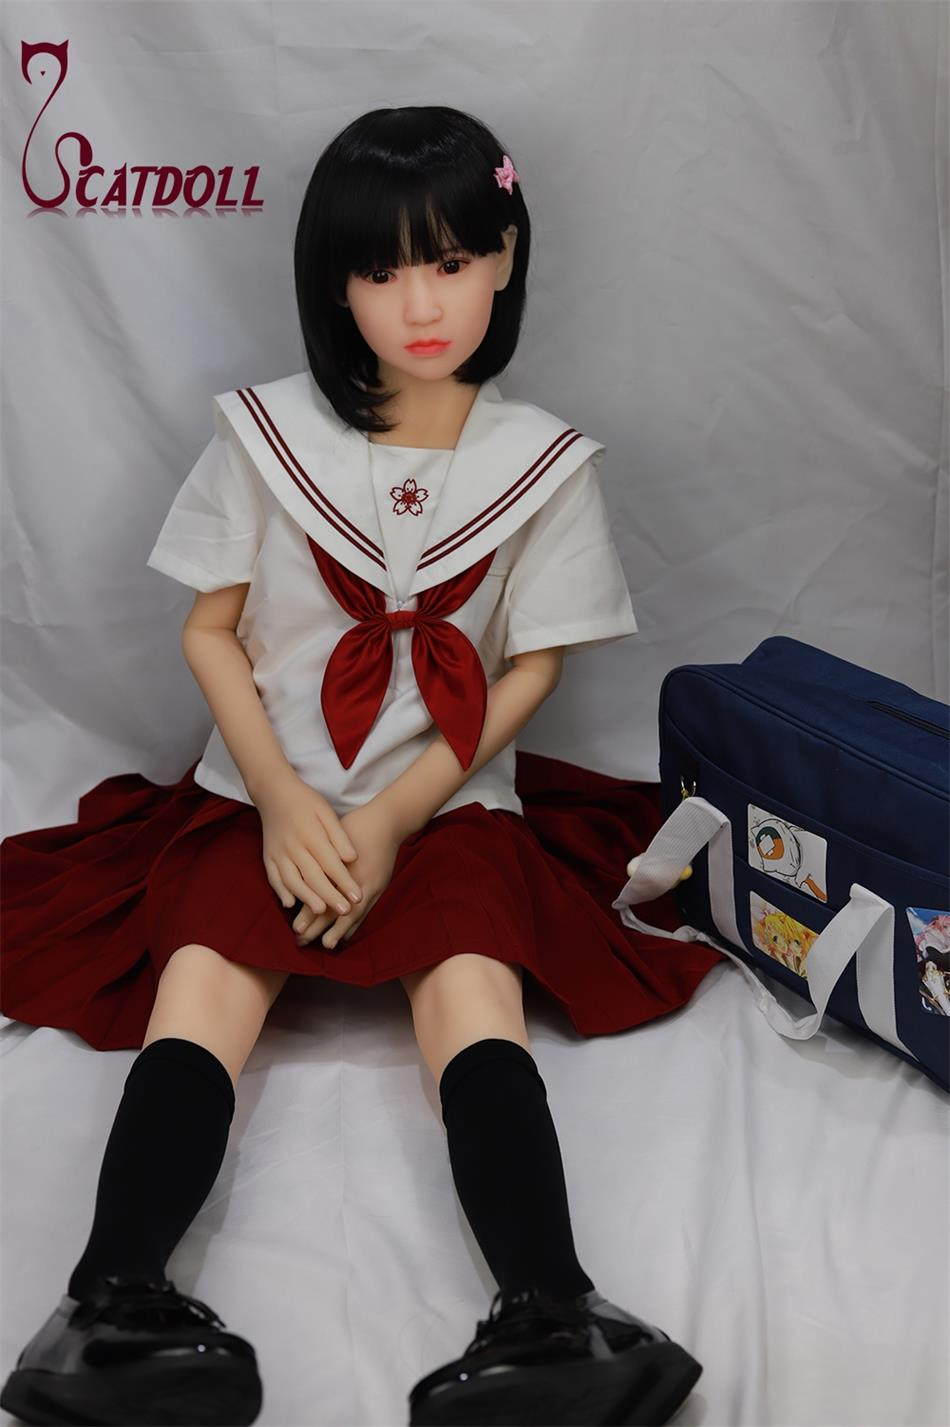 Catdoll Jing Evo,136Cm Japanese Small Breast Doll-2228